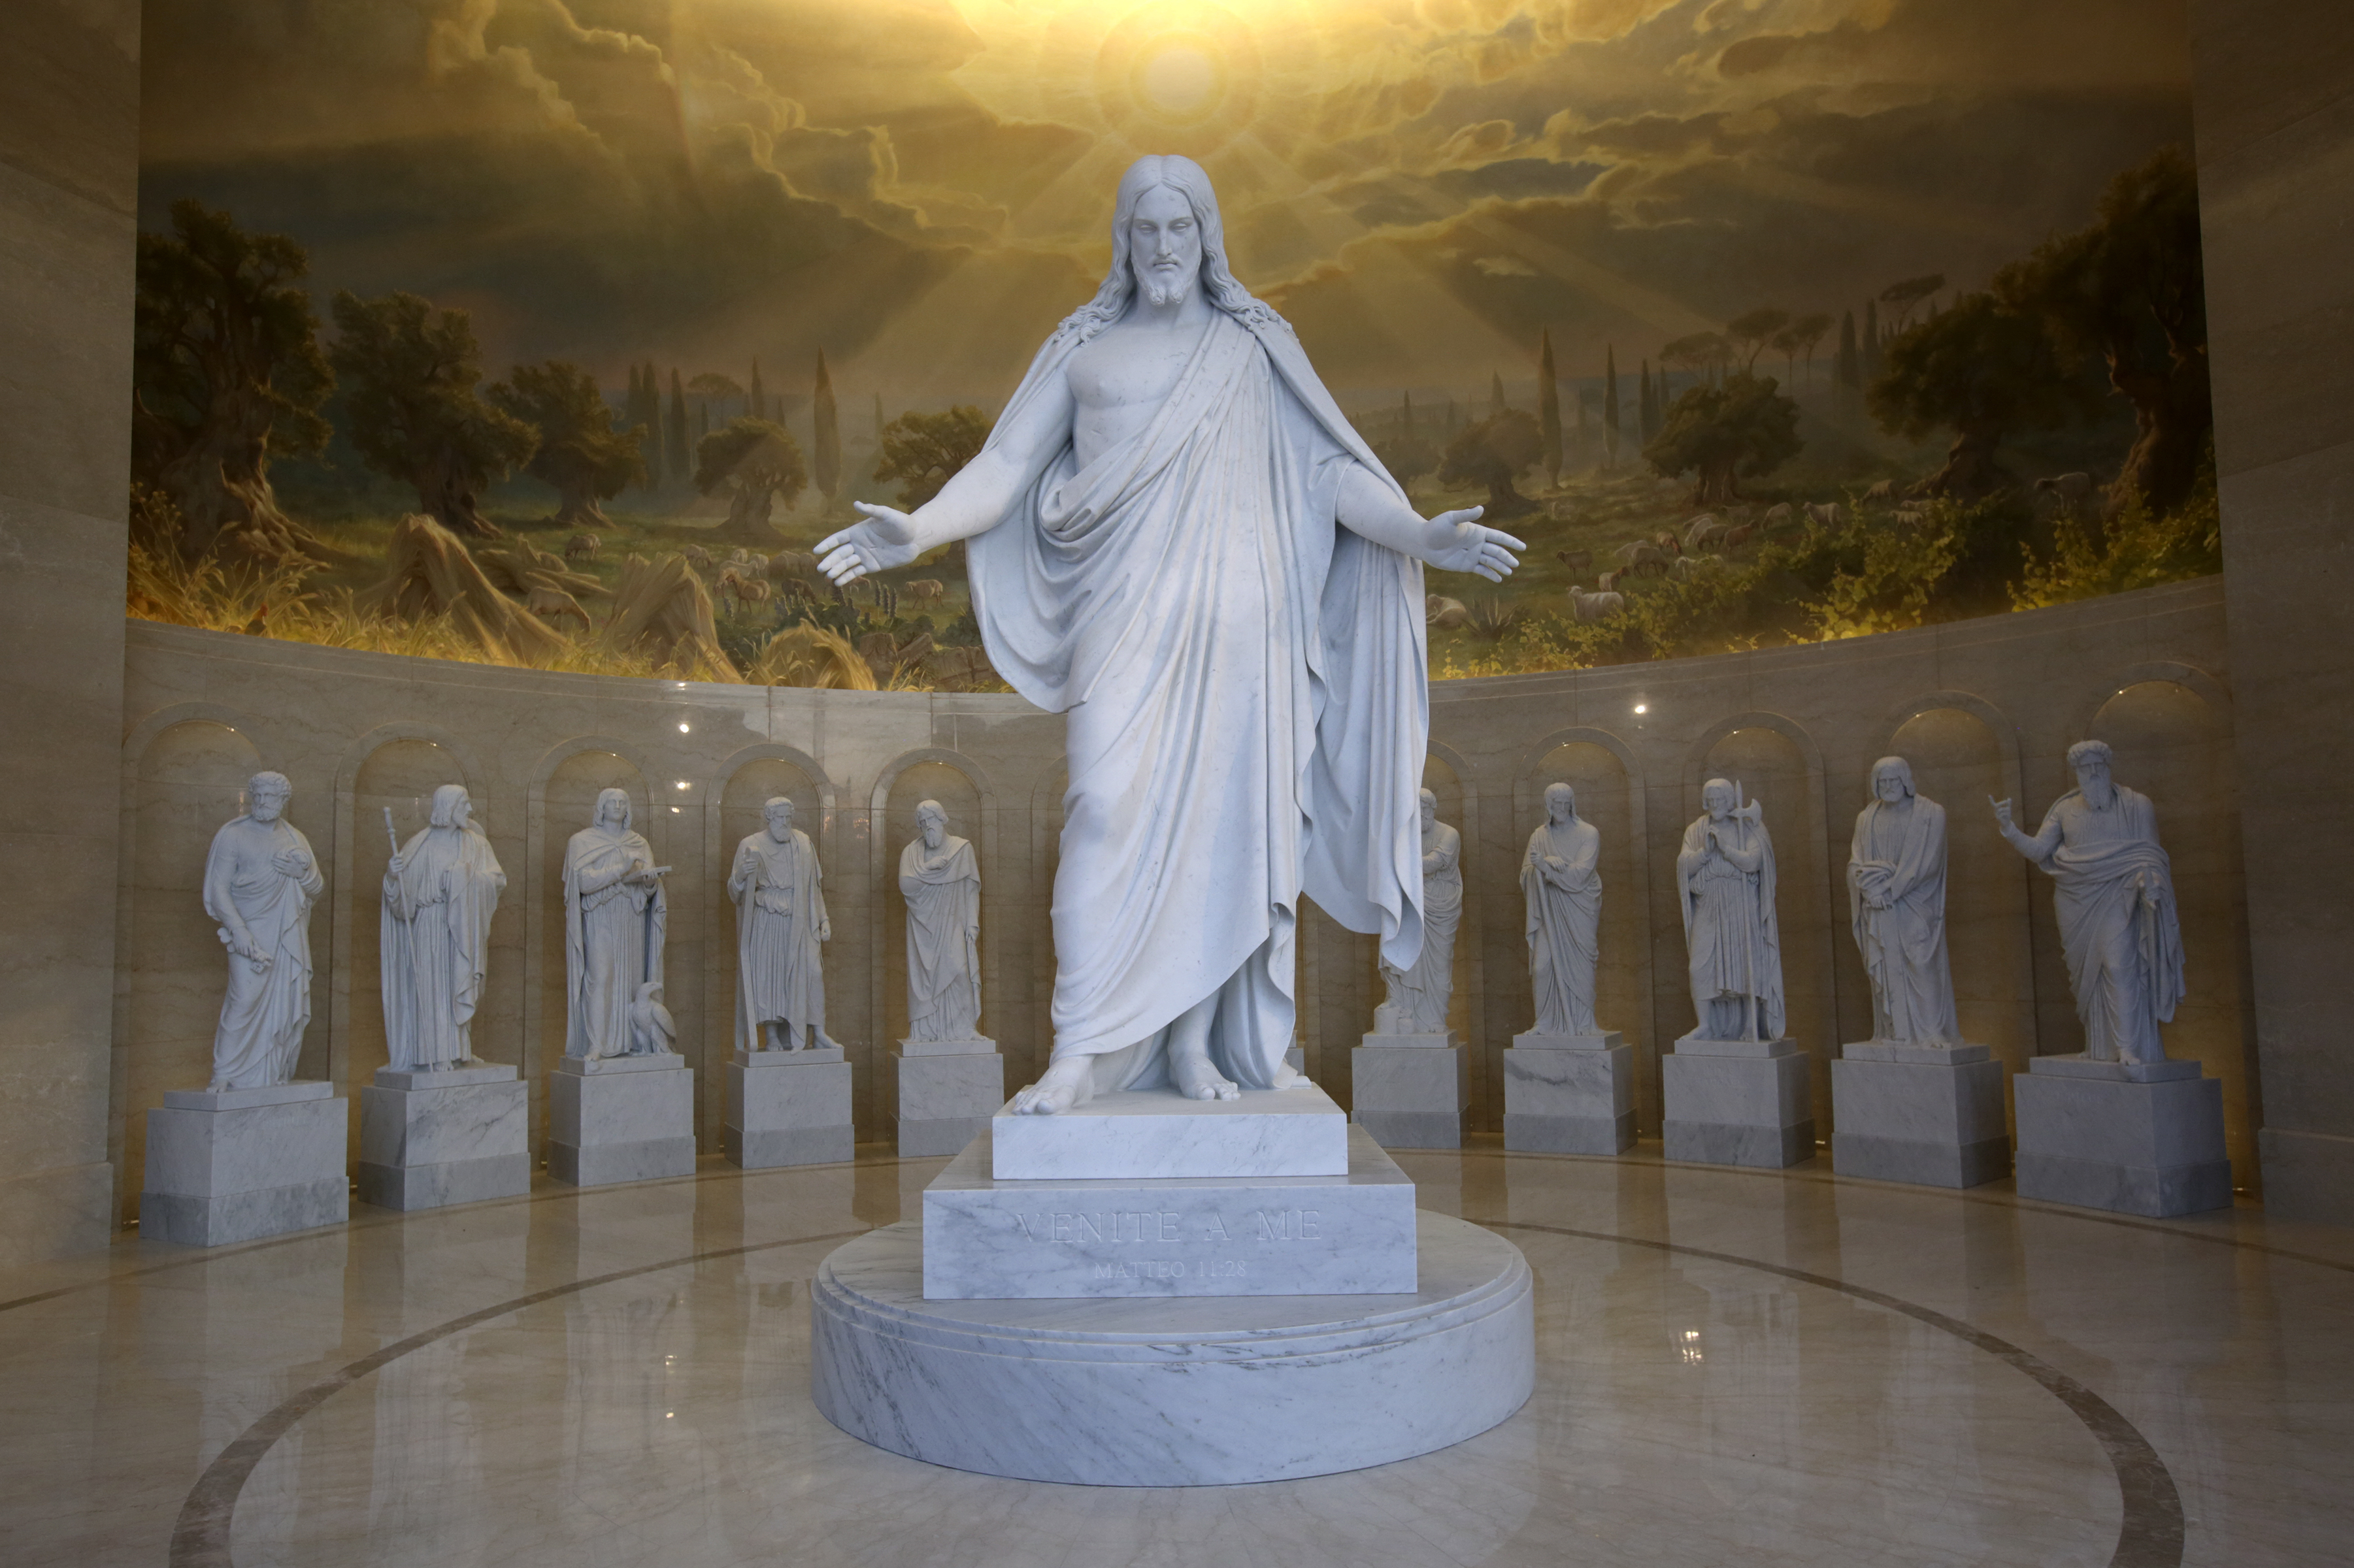 Replicas of Danish sculptor Bertel Thorvaldsen's Christus and 12 apostle statues are on display in the Rome Temple Visitors' Center in Rome, Italy, on Friday, Nov. 16, 2018.